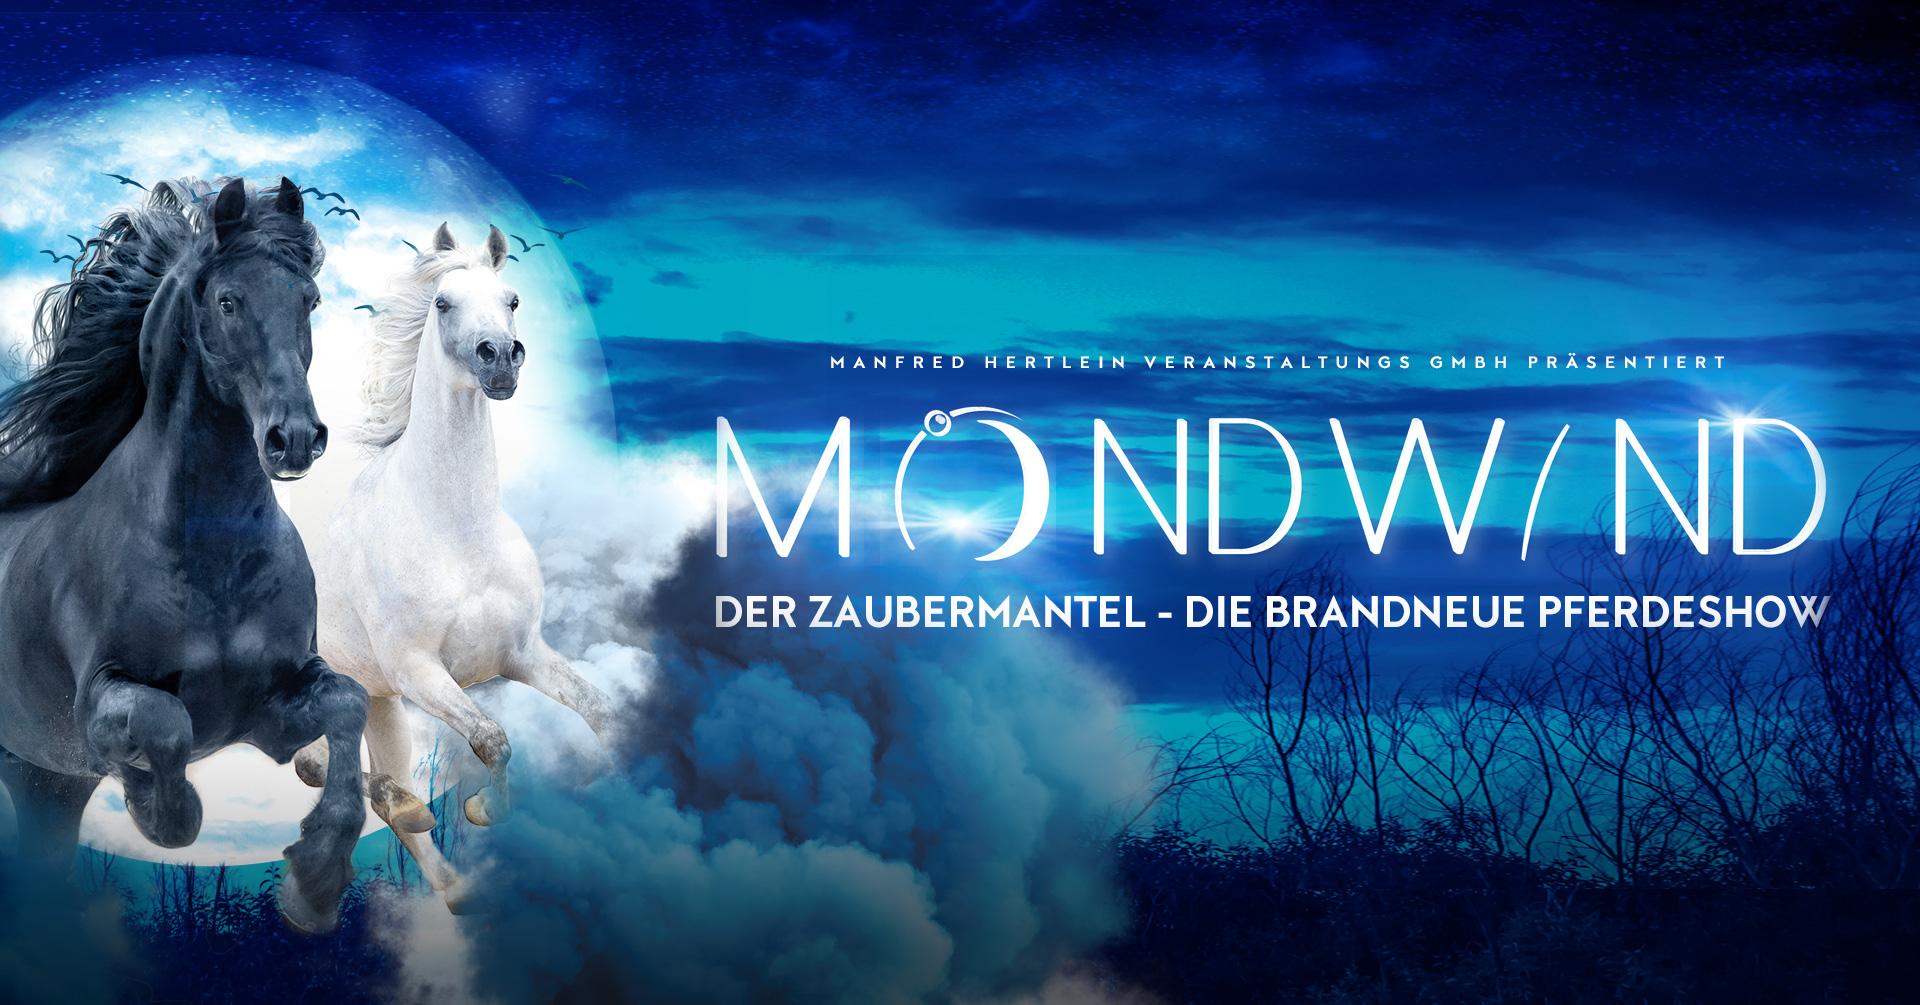 poster of the new mondwind show